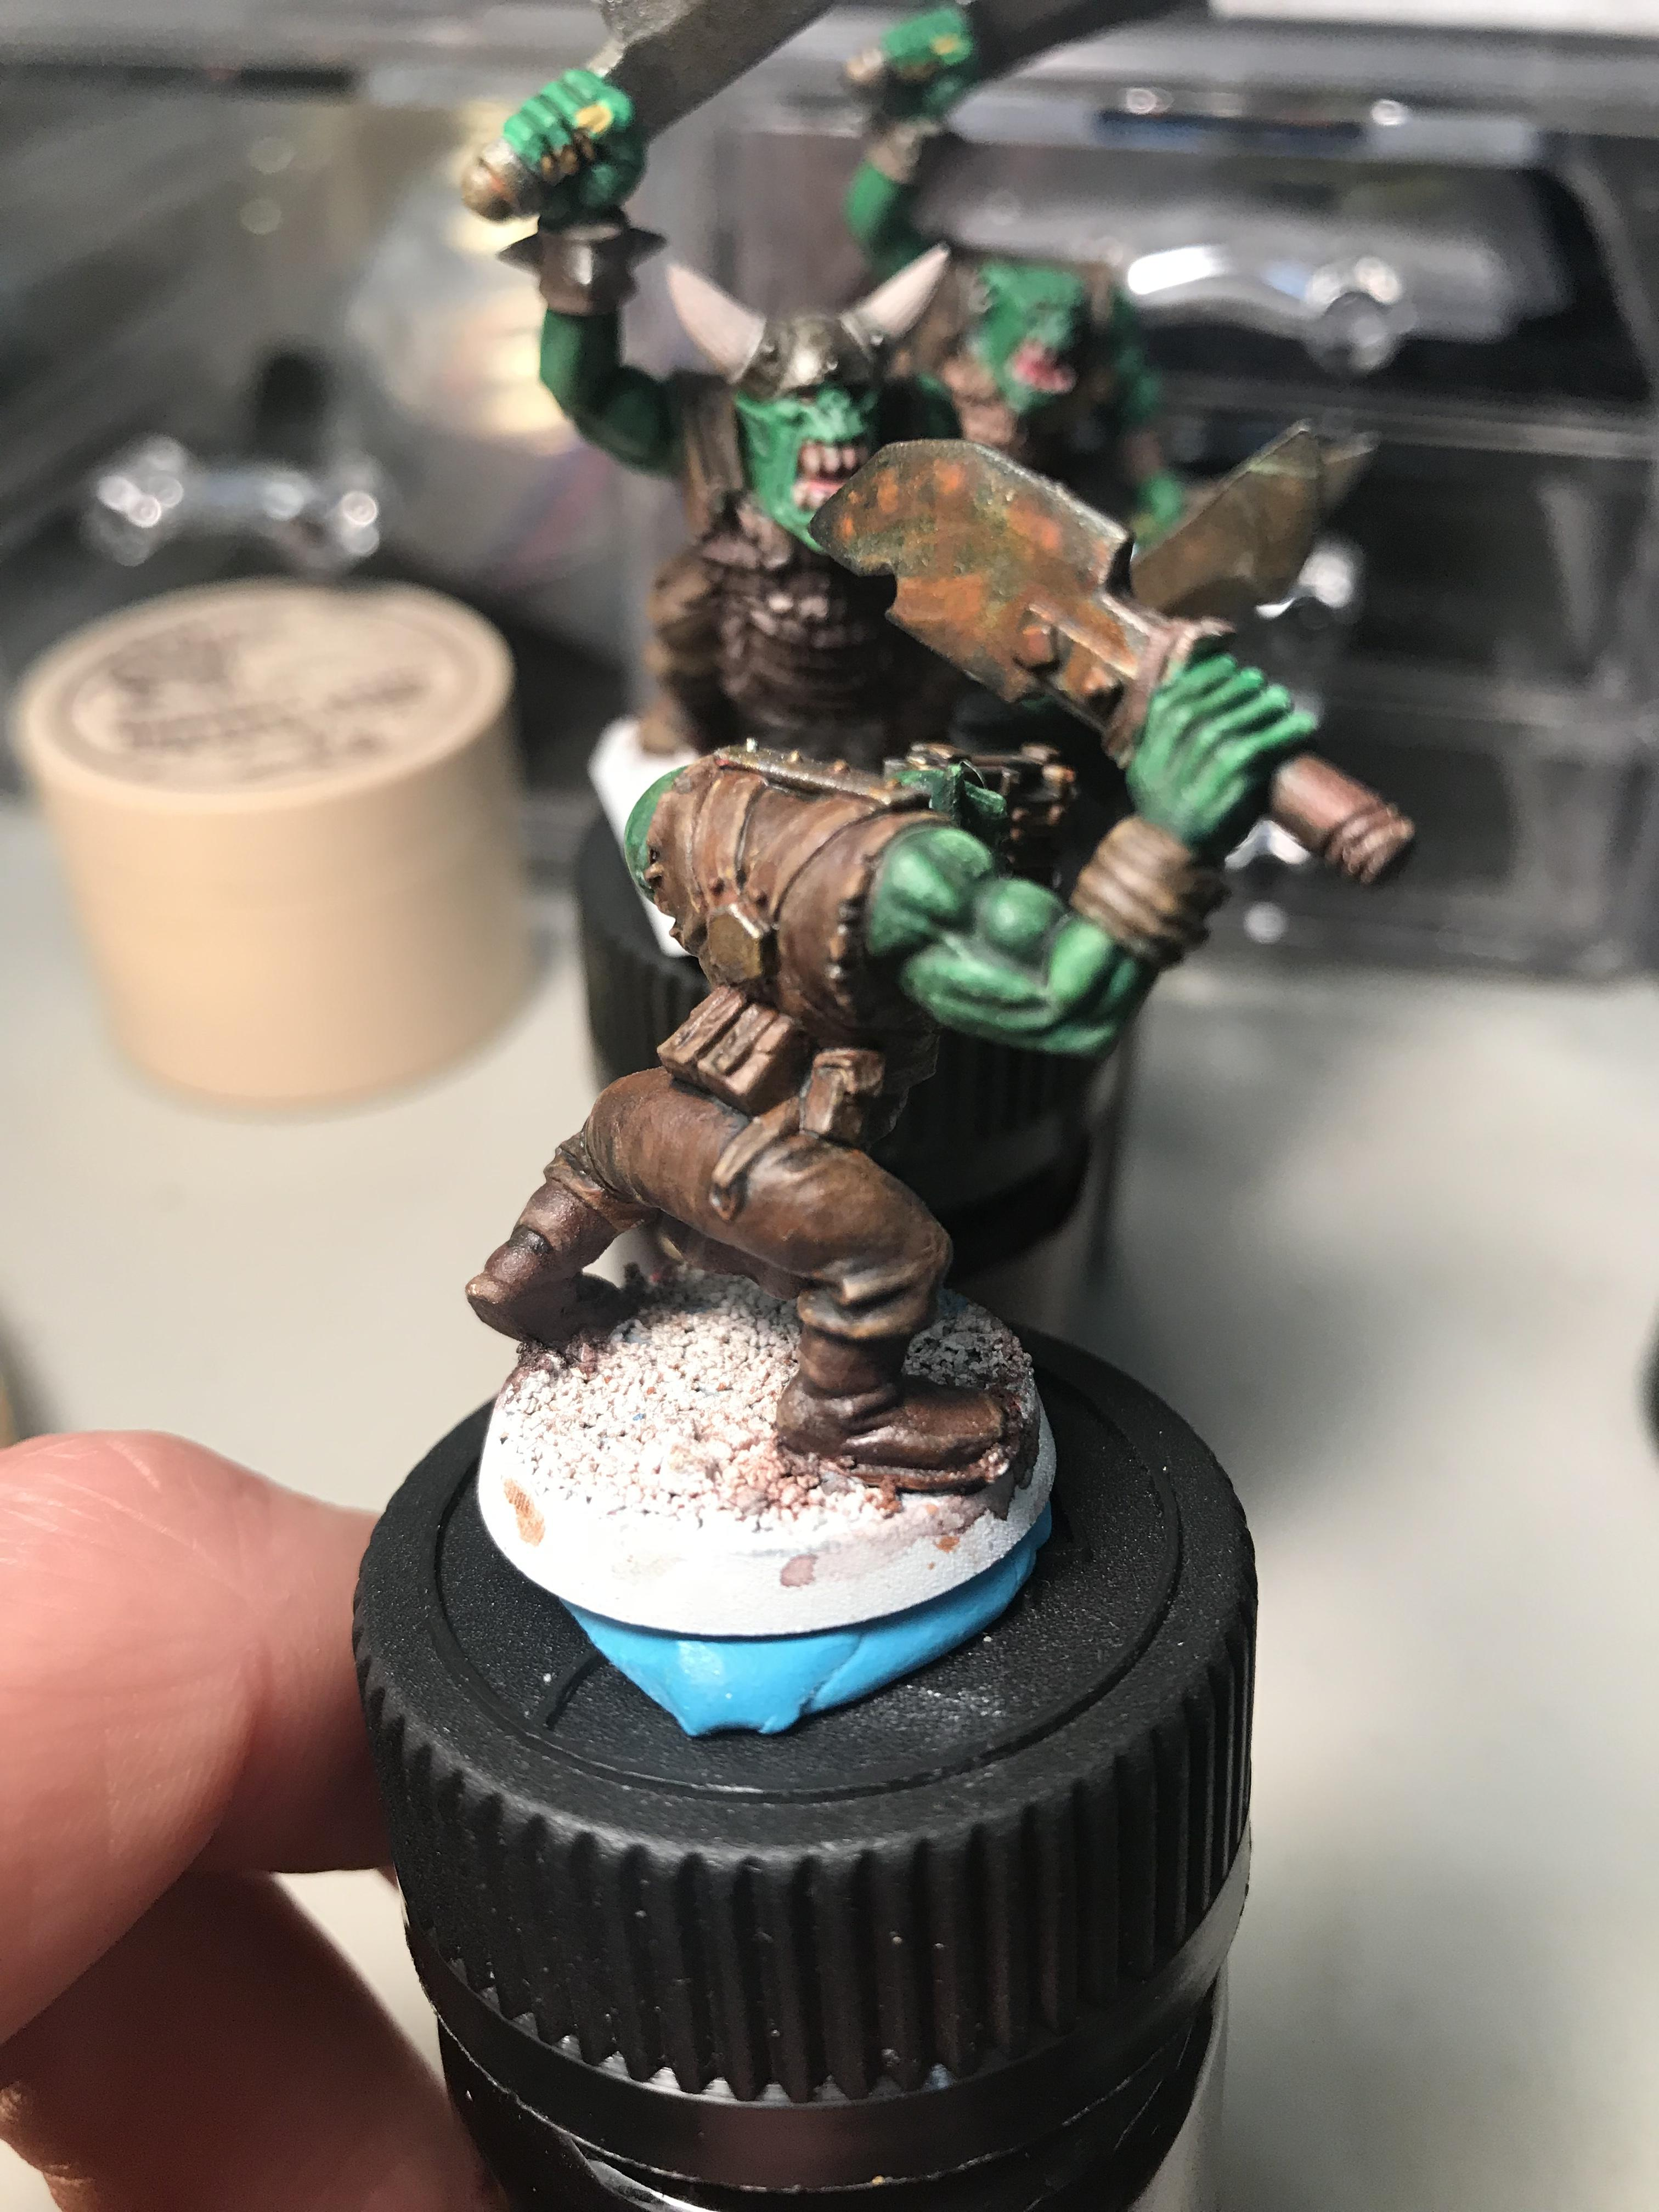 40k Ork with rust effect